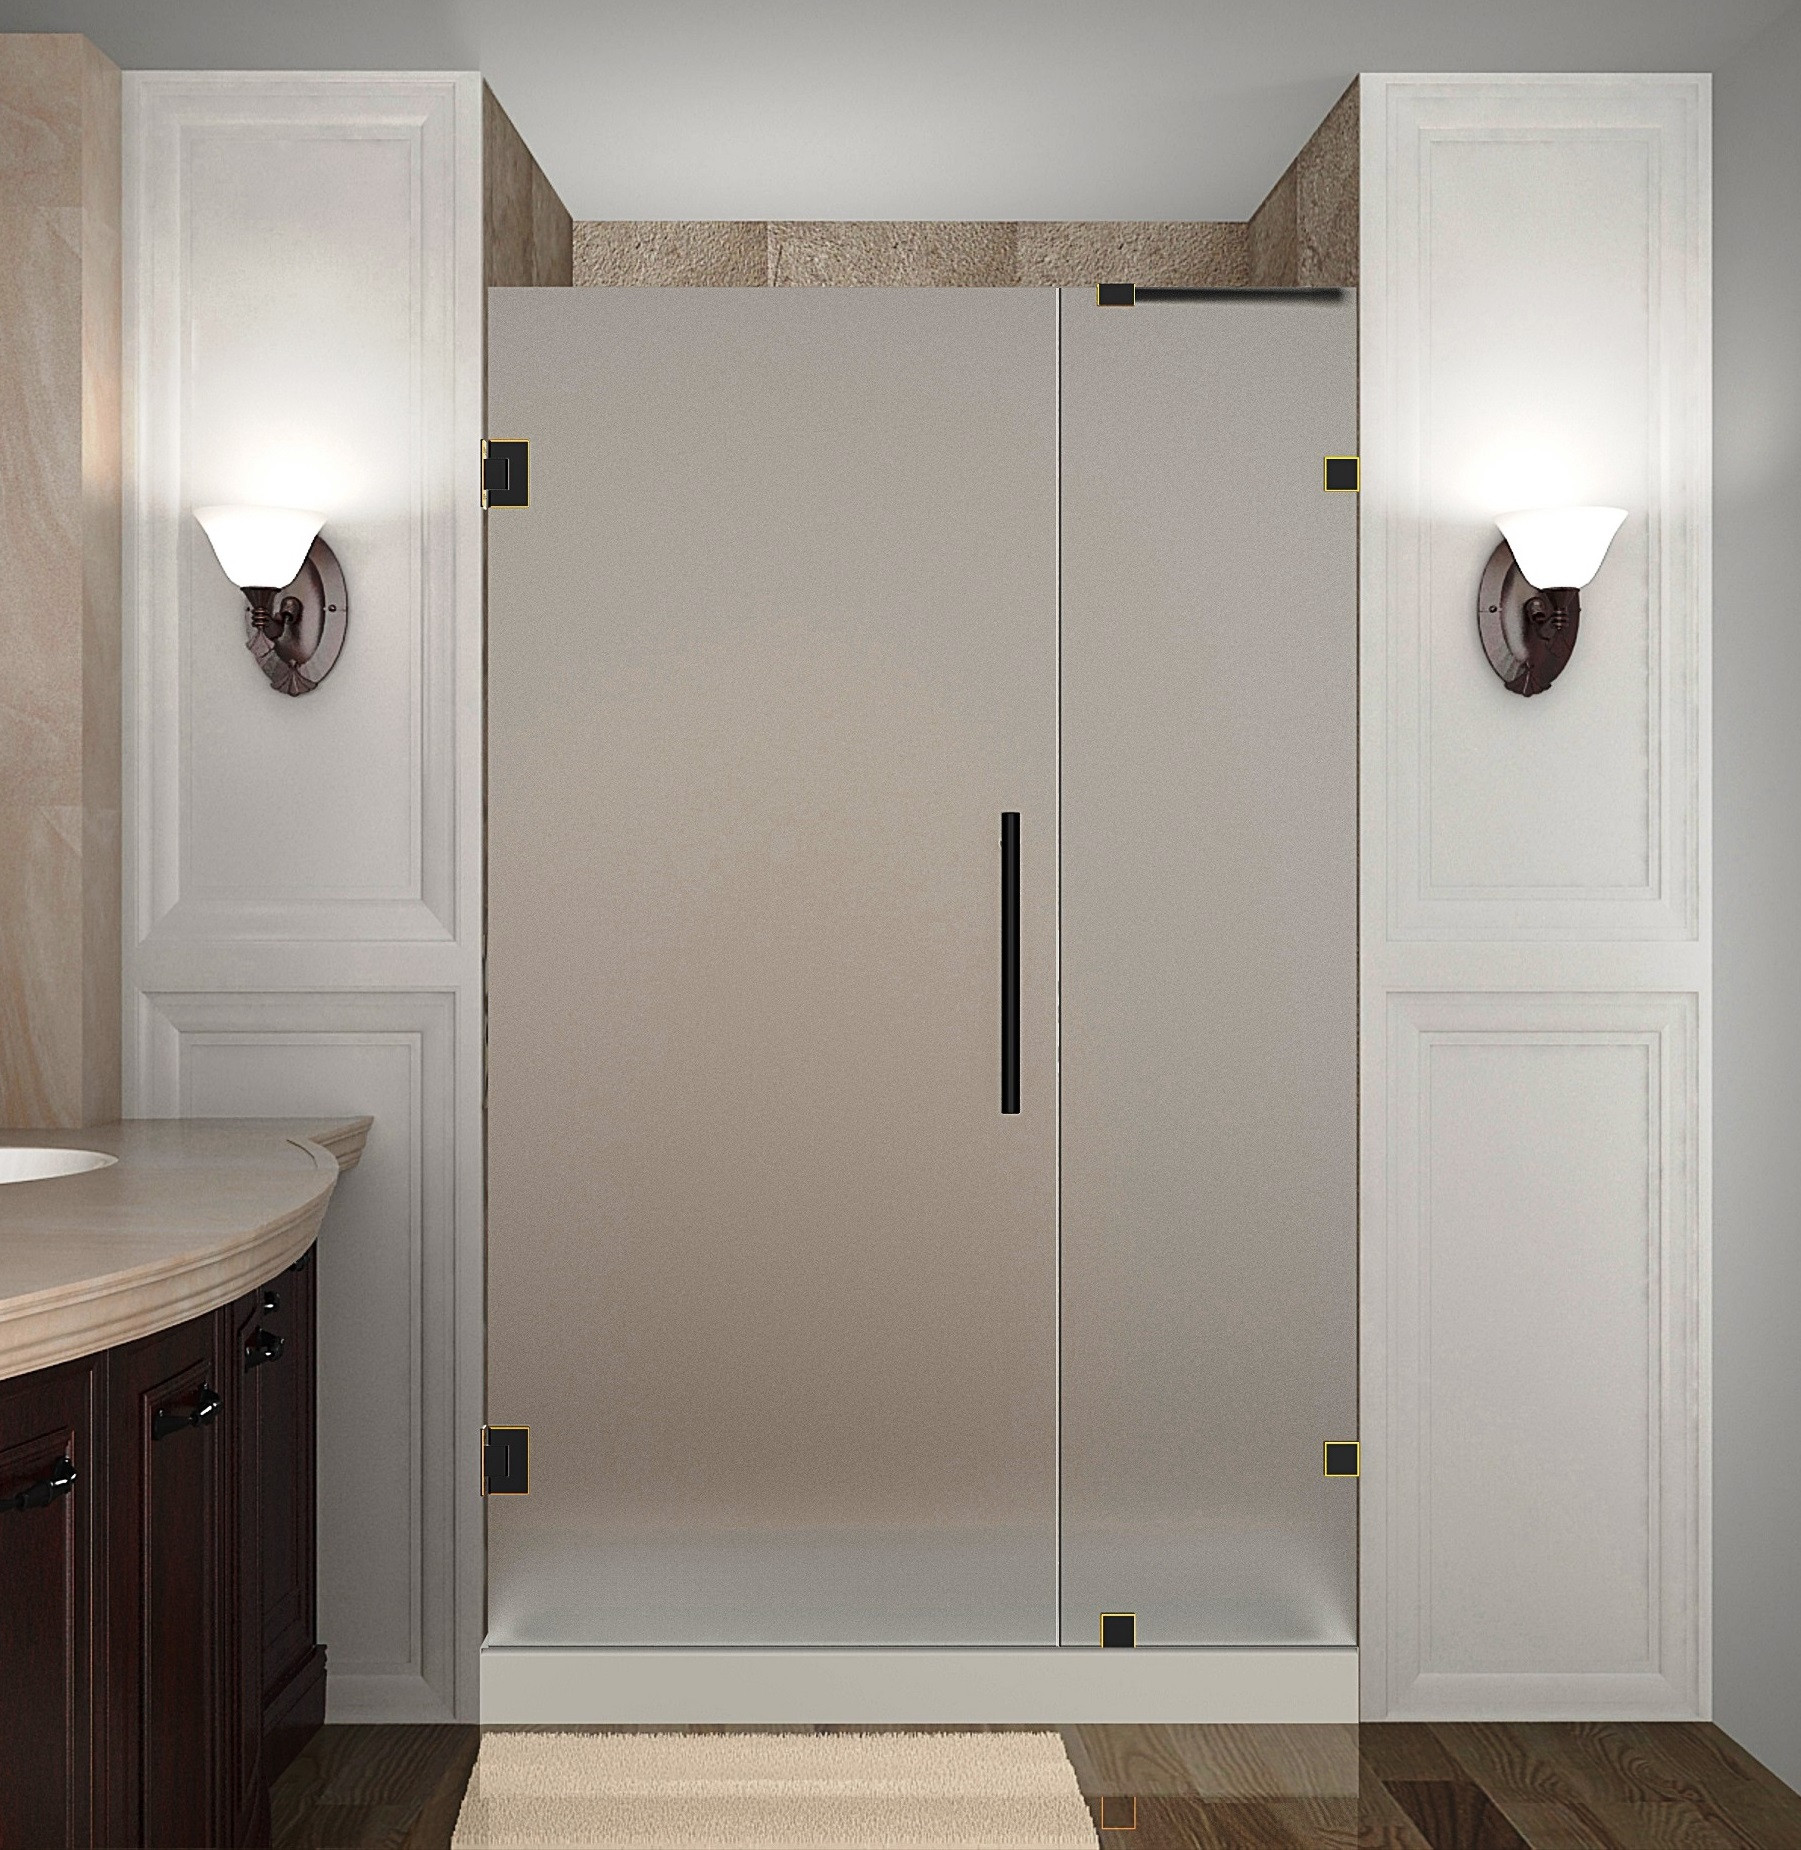 Aston Global SDR985F-ORB-38-10 Frameless Hinged Frosted Glass Shower Door In Oil Rubbed Bronze